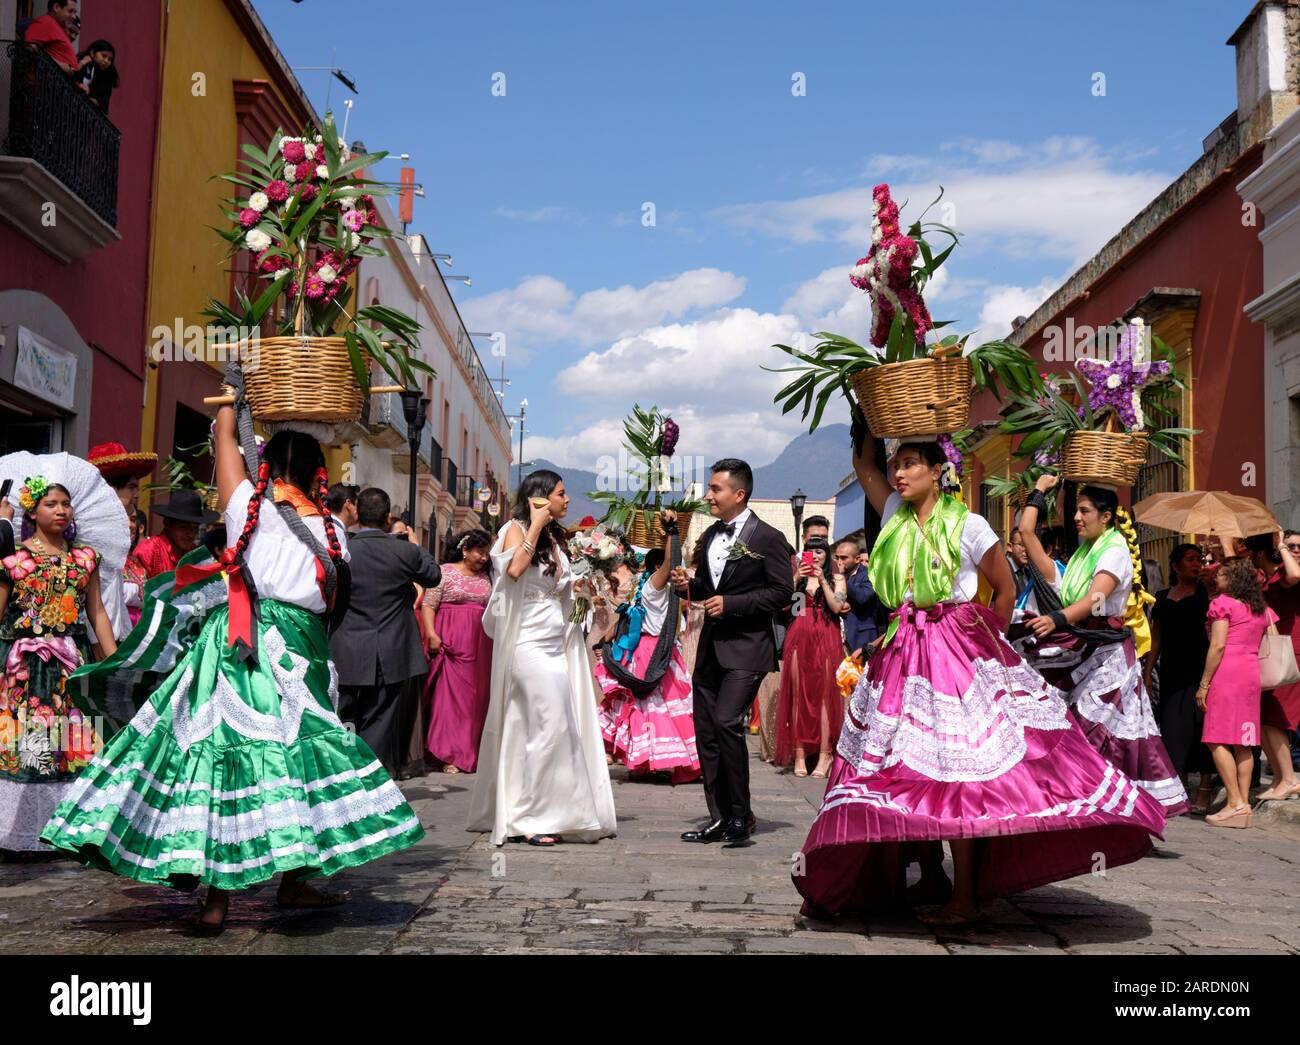 bride-and-groom-framed-by-woman-in-traditional-outfit-part-of-traditional-wedding-parade-calenda-de-bodas-on-the-streets-of-oaxaca-2ARDN0N.jpg